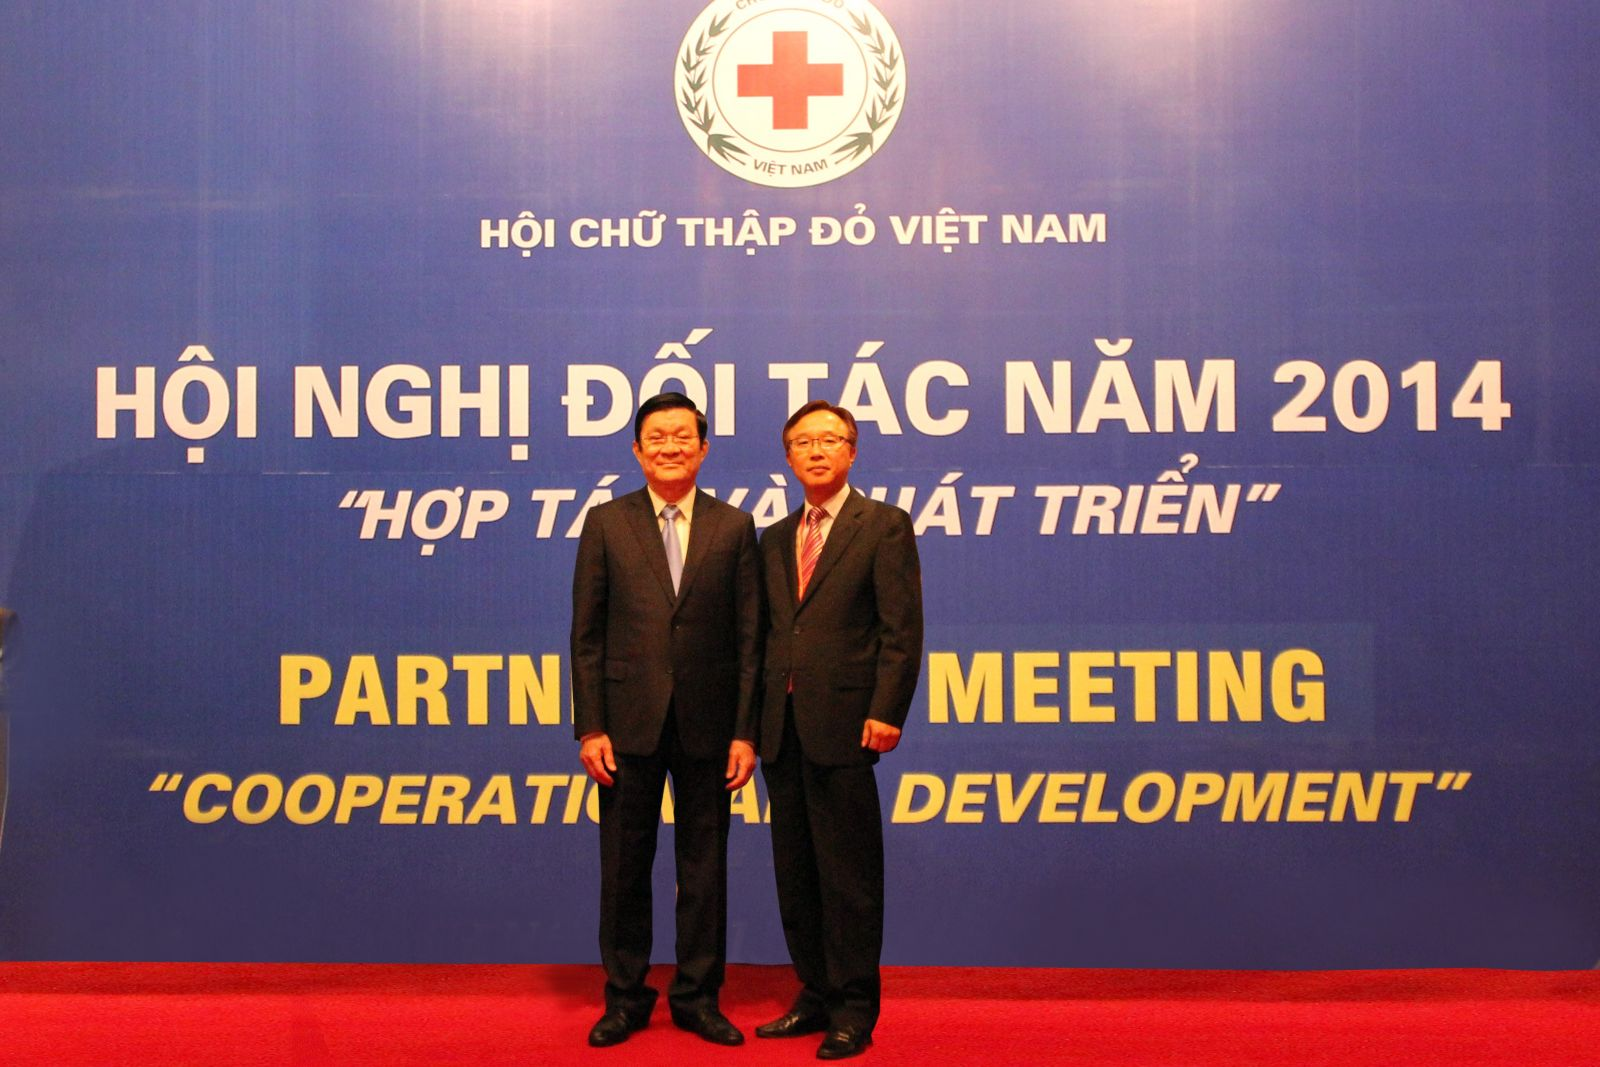 Attend the Conference for Partners held by Vietnam Red Cross Society